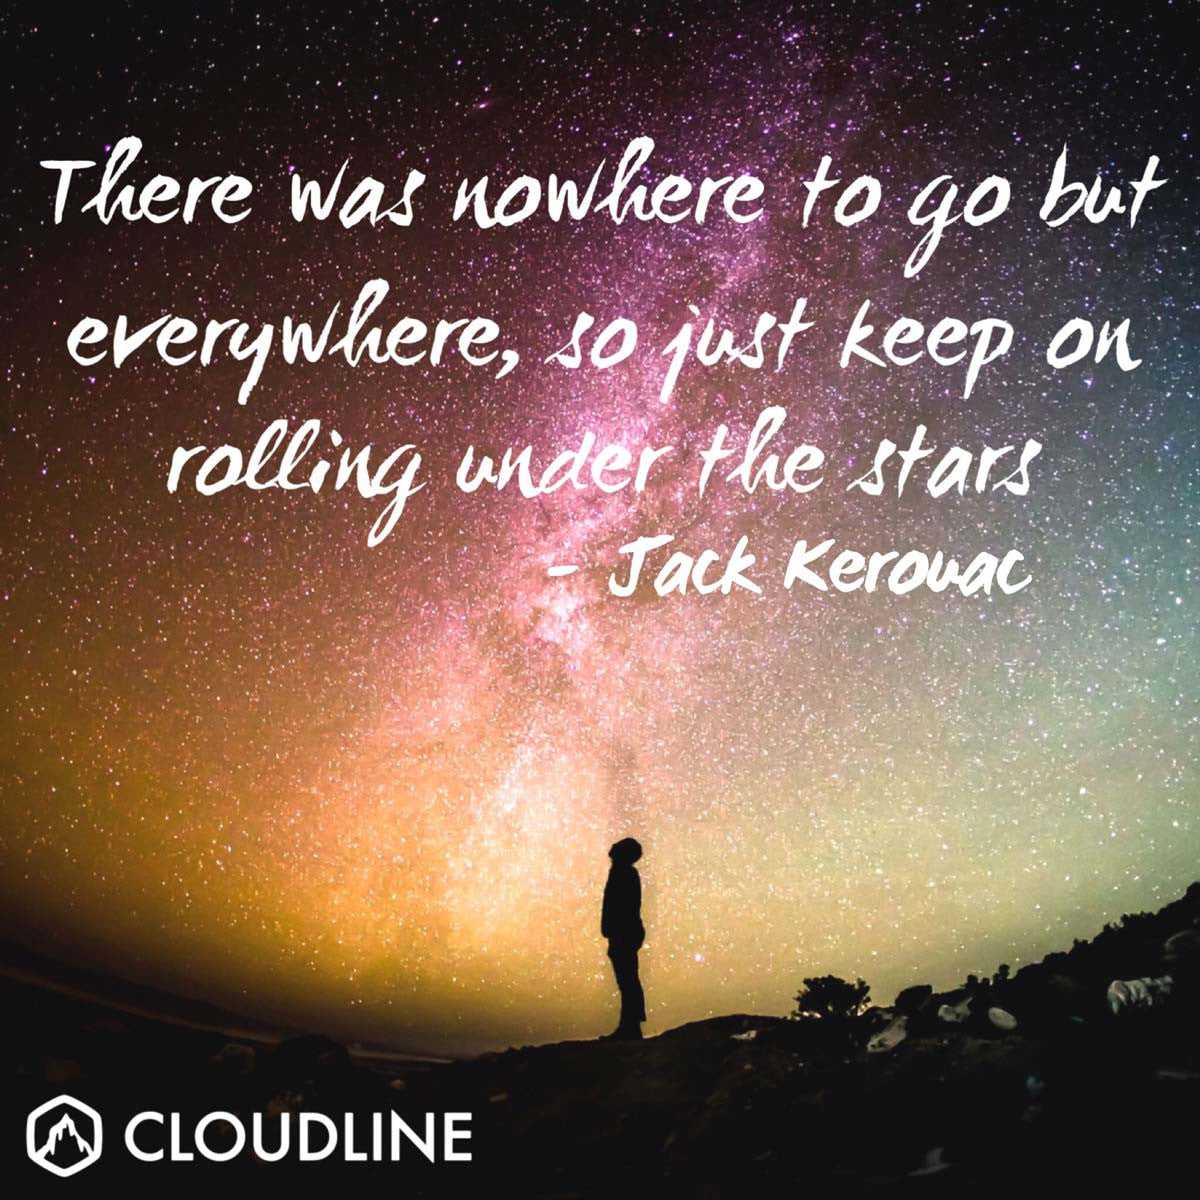 """There was nowhere to go but everywhere, so just keep on rolling under the stars."" -Jack Kerouac 